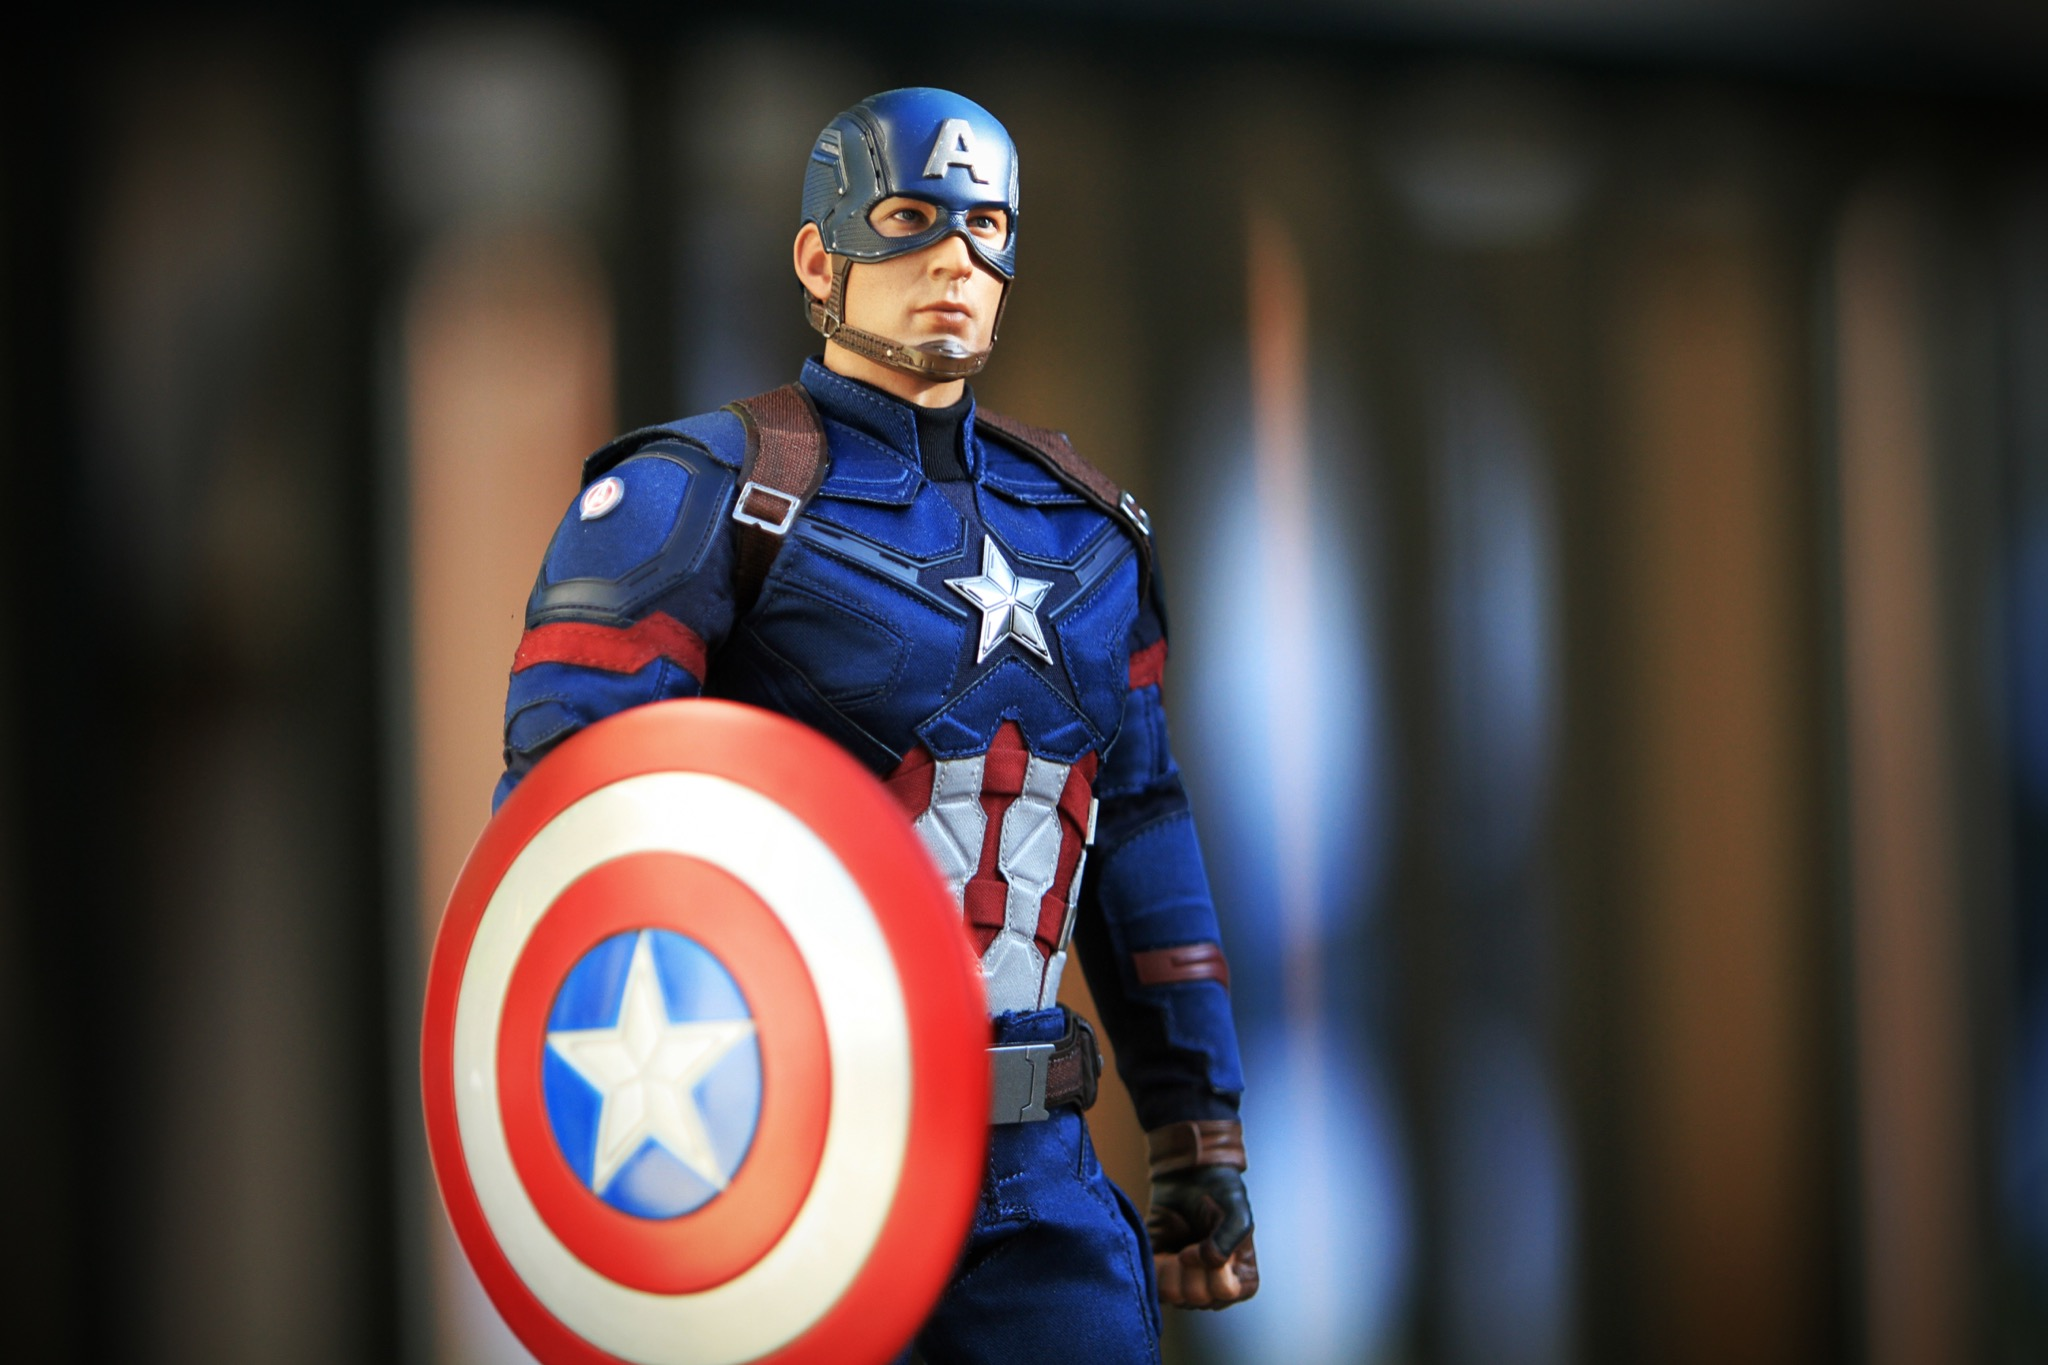 The Best Captain America Movies From Worst To Best – Ranked